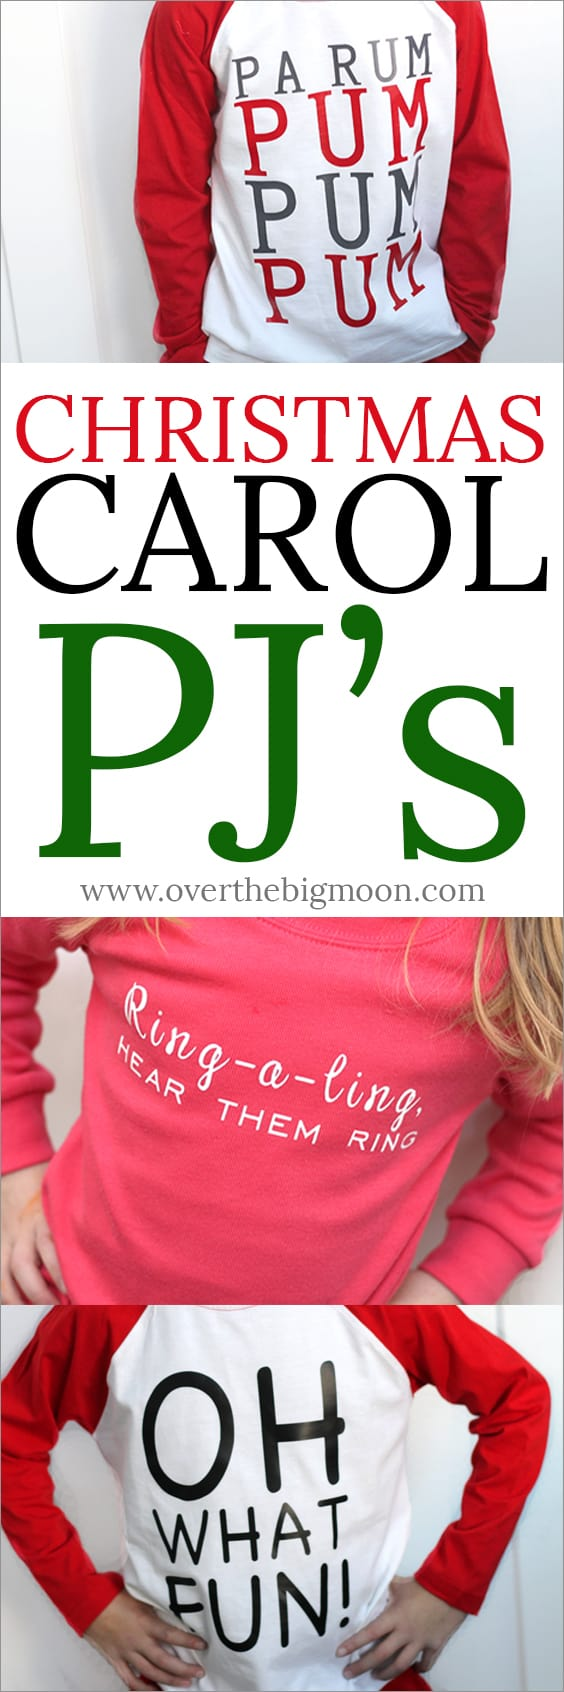 Christmas Carol PJ's - made with my Cricut Maker! Click over to get the Design Space files! From overthebigmoon.com!